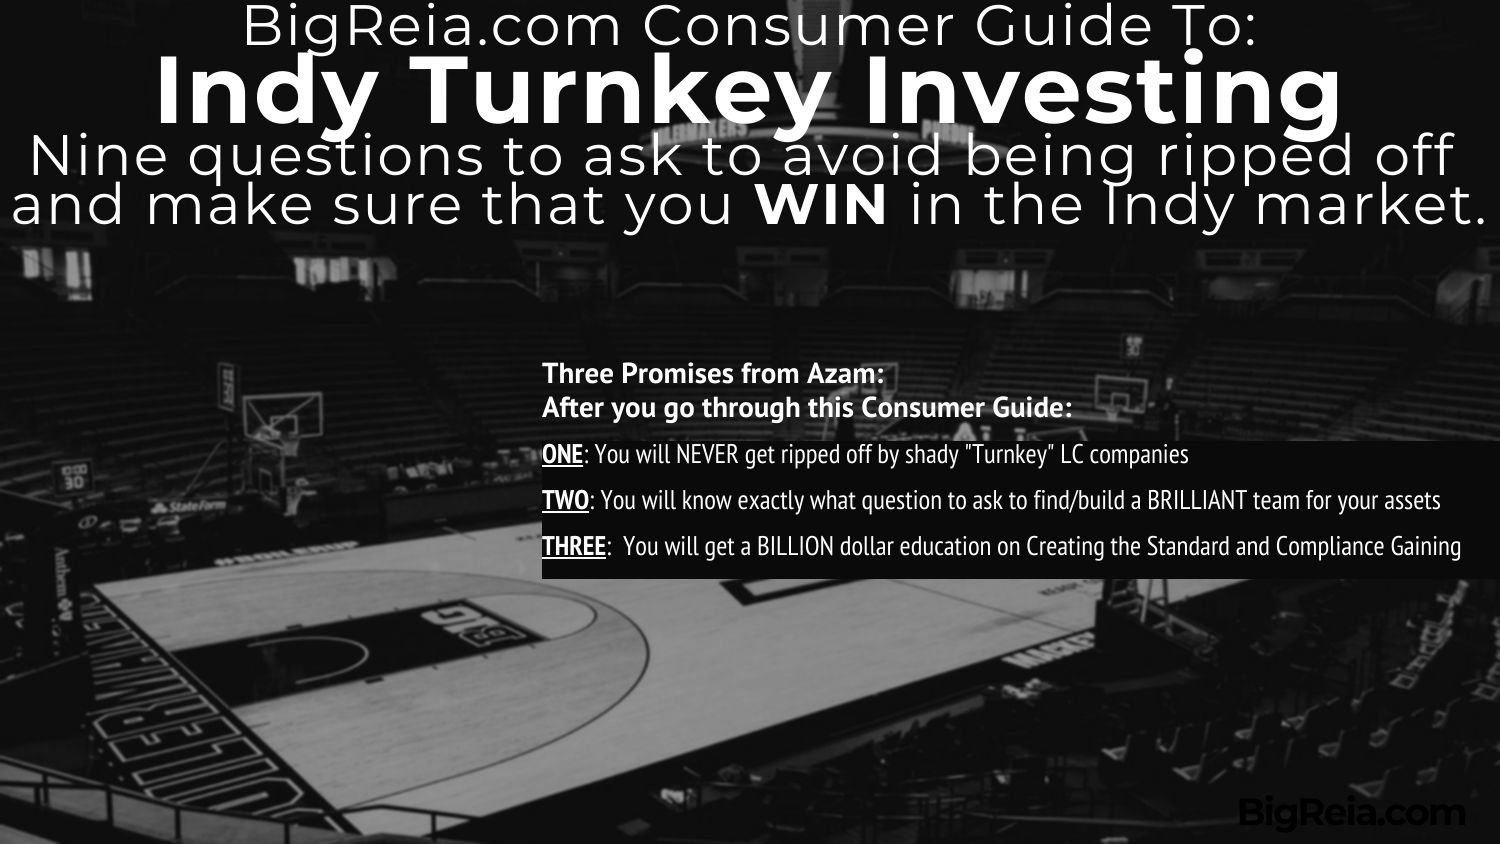 Indiana Turnkey Investing these steps are promised to avoid scams